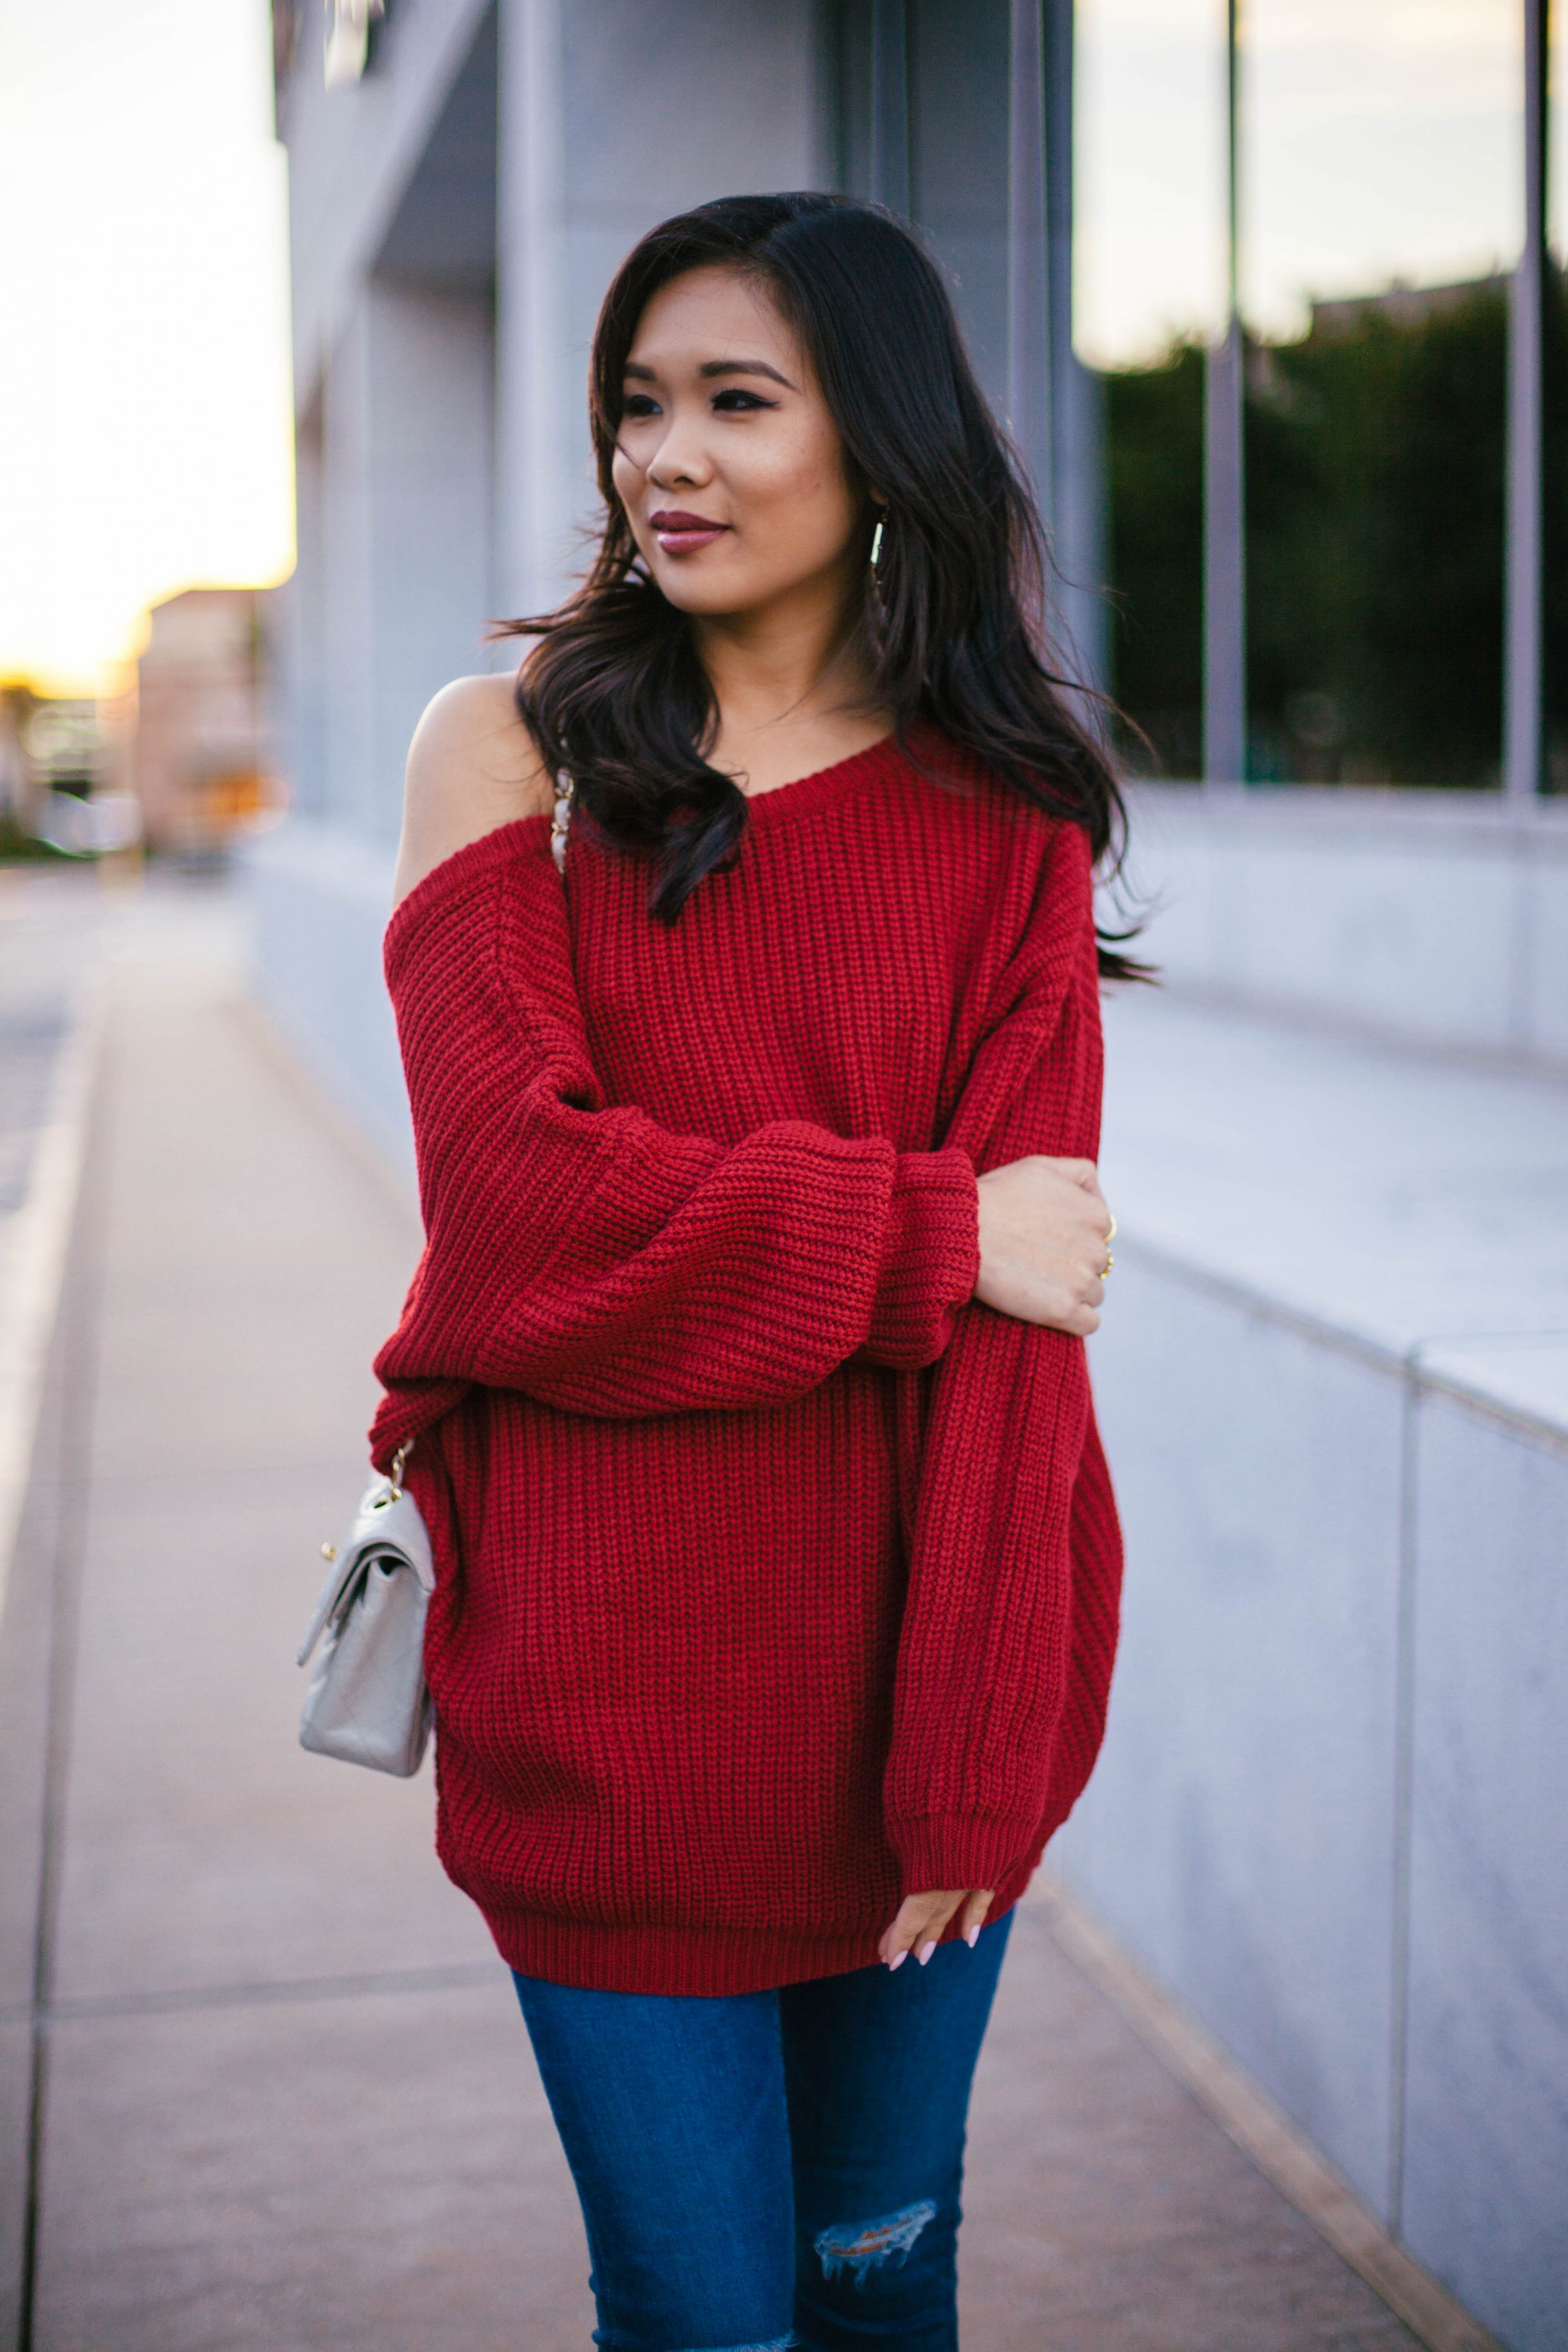 Home Shop 24 Fall Red :: Slouchy Sweater With Low Back - Color & Chic